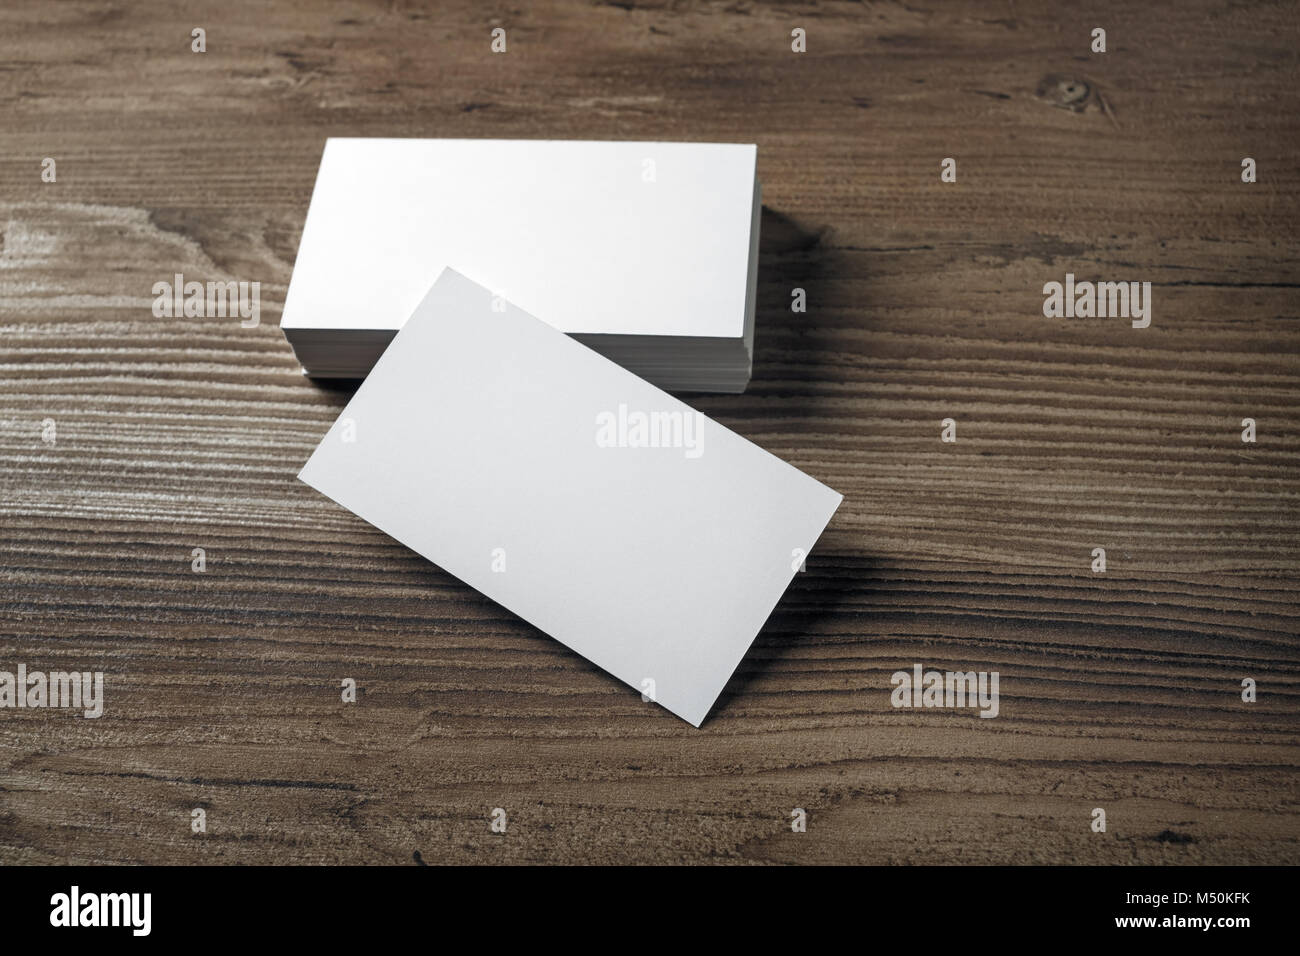 Photo of blank business cards Stock Photo: 175192295 - Alamy